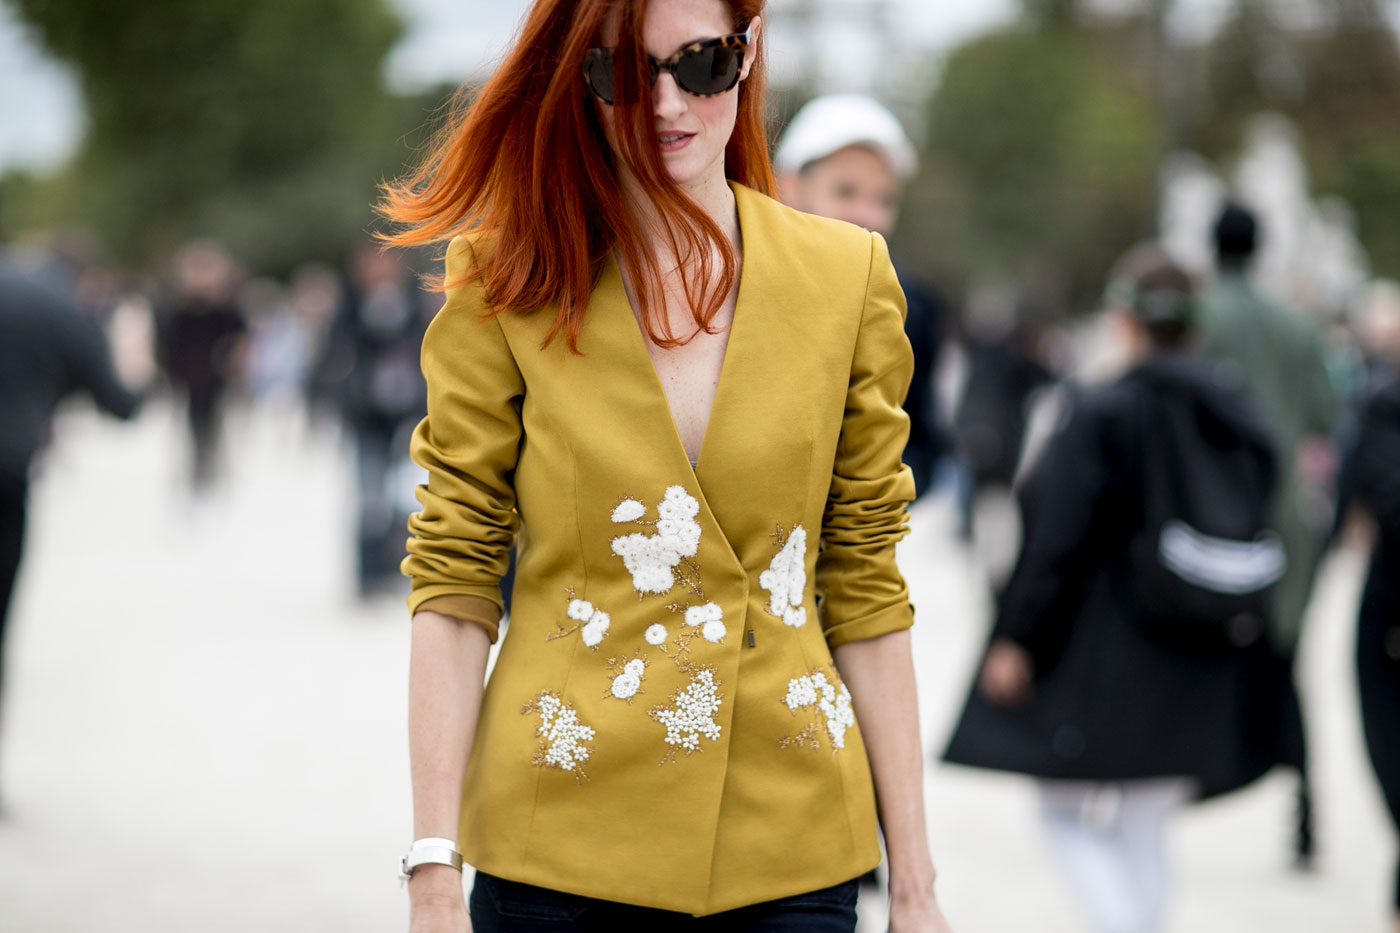 MUSTARD YELLOW: winter's answer to summer's sunny shades...